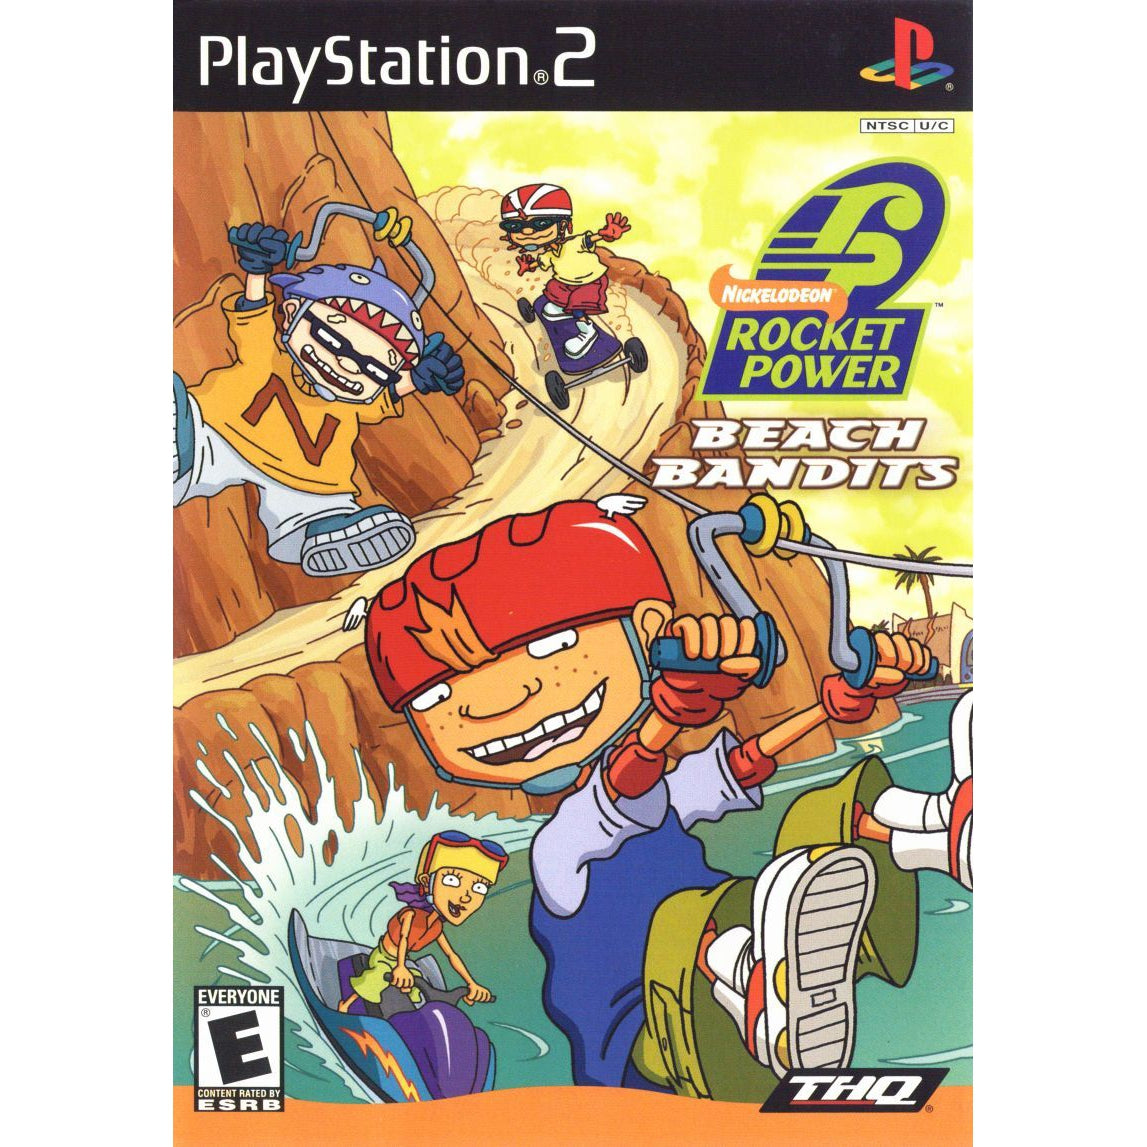 Nickelodeon: Rocket Power - Beach Bandits - PlayStation 2 (PS2) Game Complete - YourGamingShop.com - Buy, Sell, Trade Video Games Online. 120 Day Warranty. Satisfaction Guaranteed.